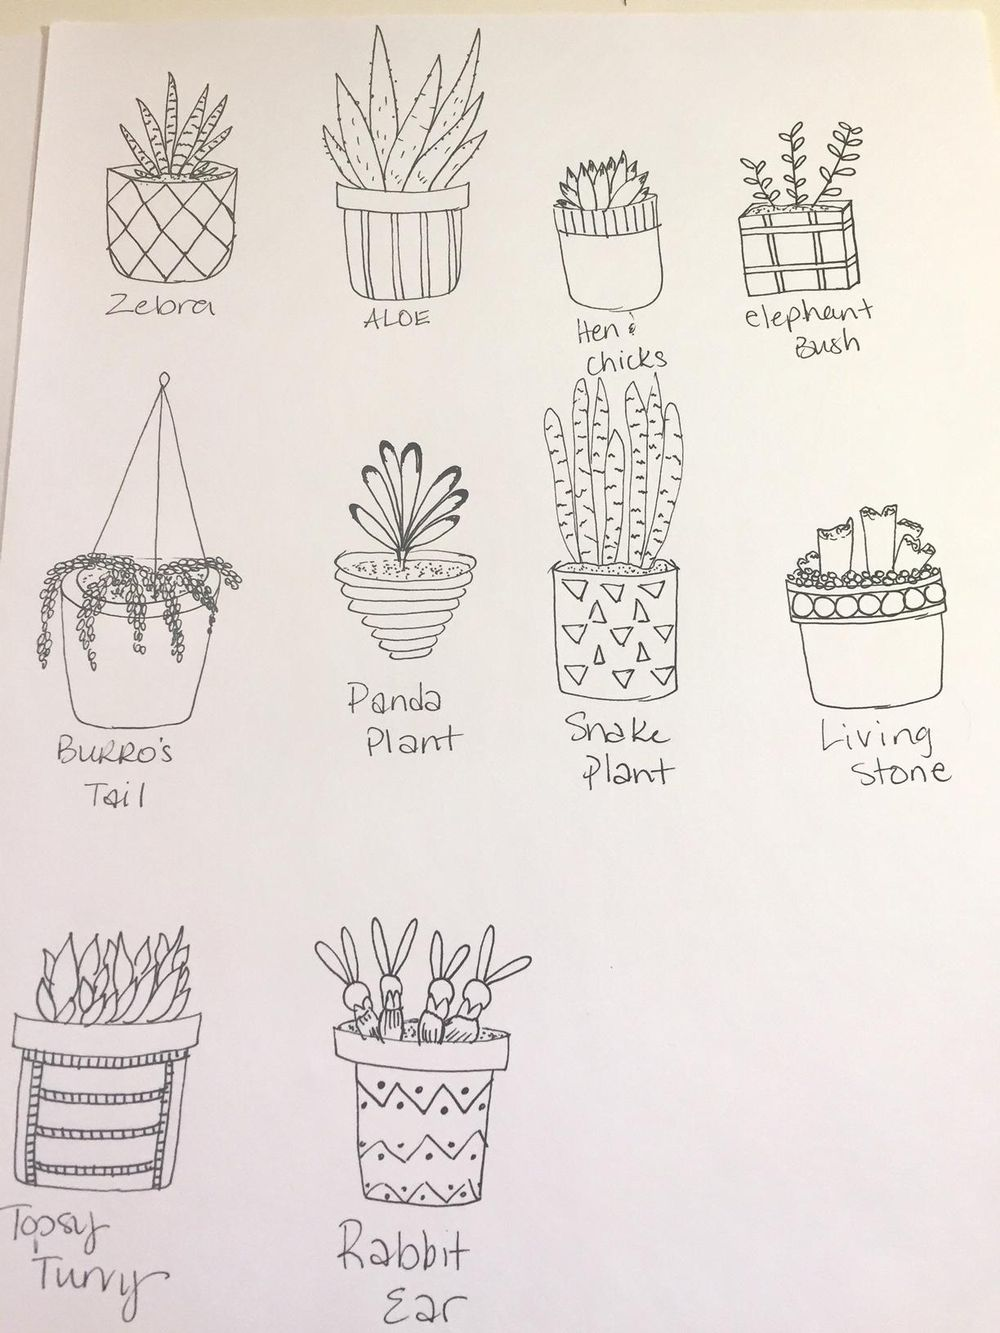 My Cactus practice :) - image 2 - student project